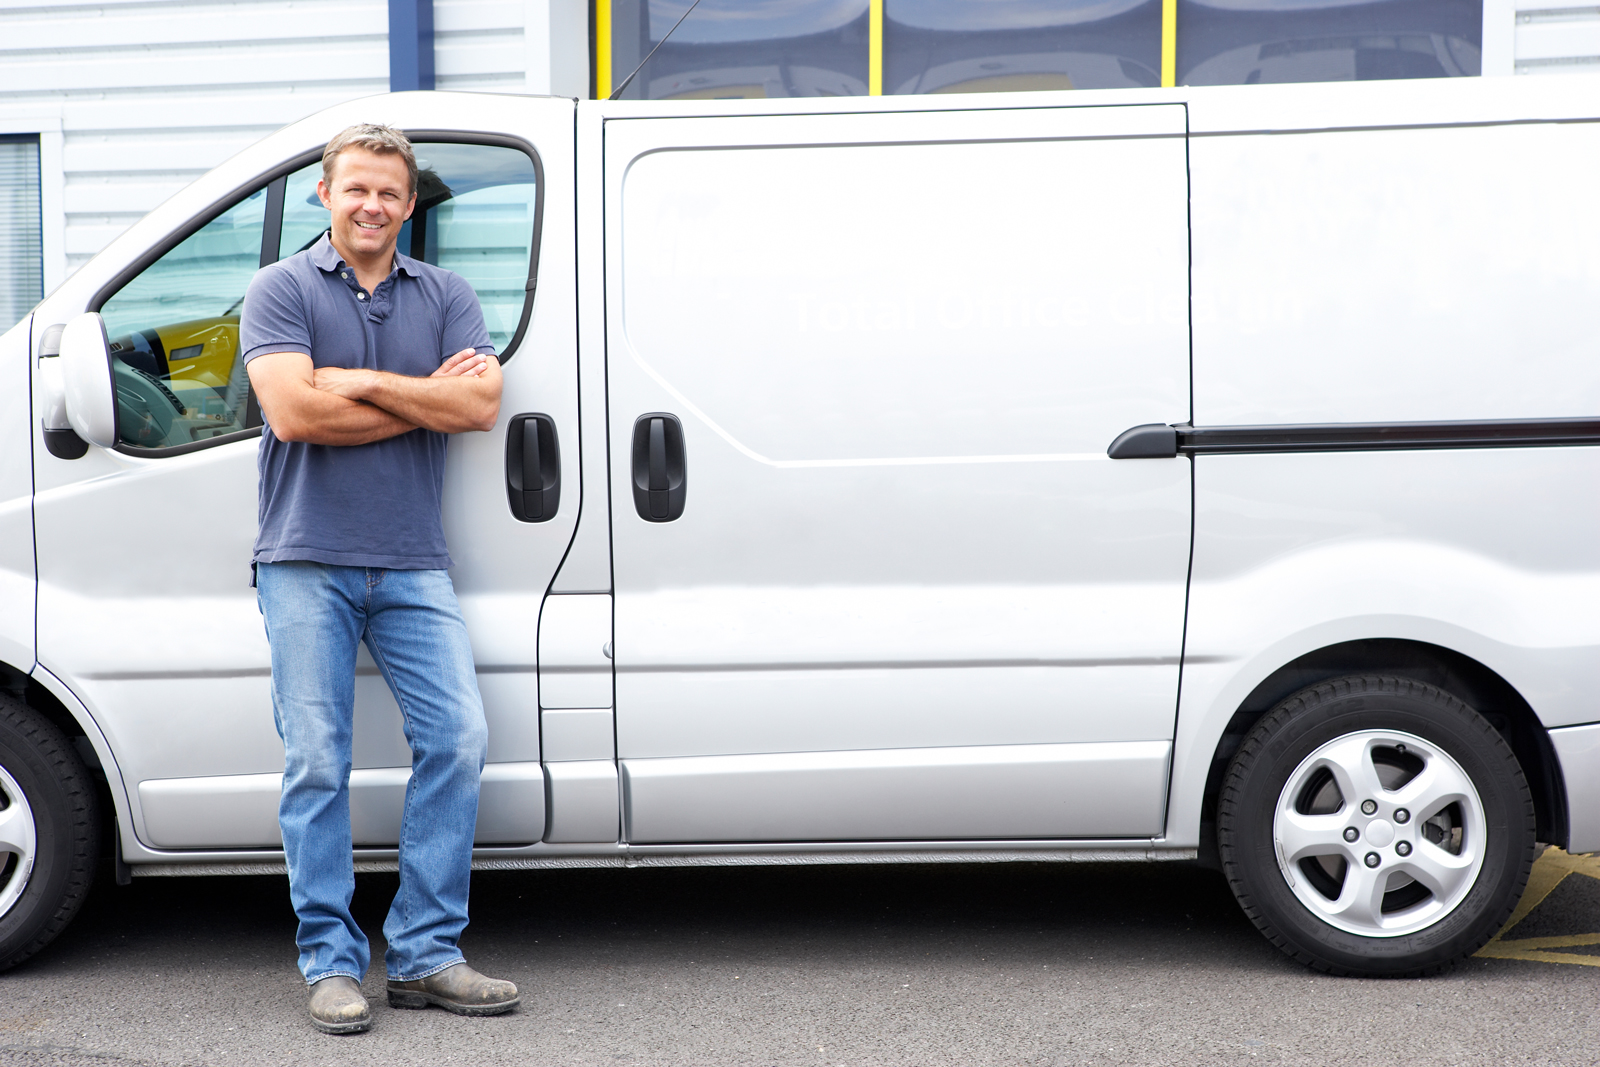 A courier leaning against the side of his silver van